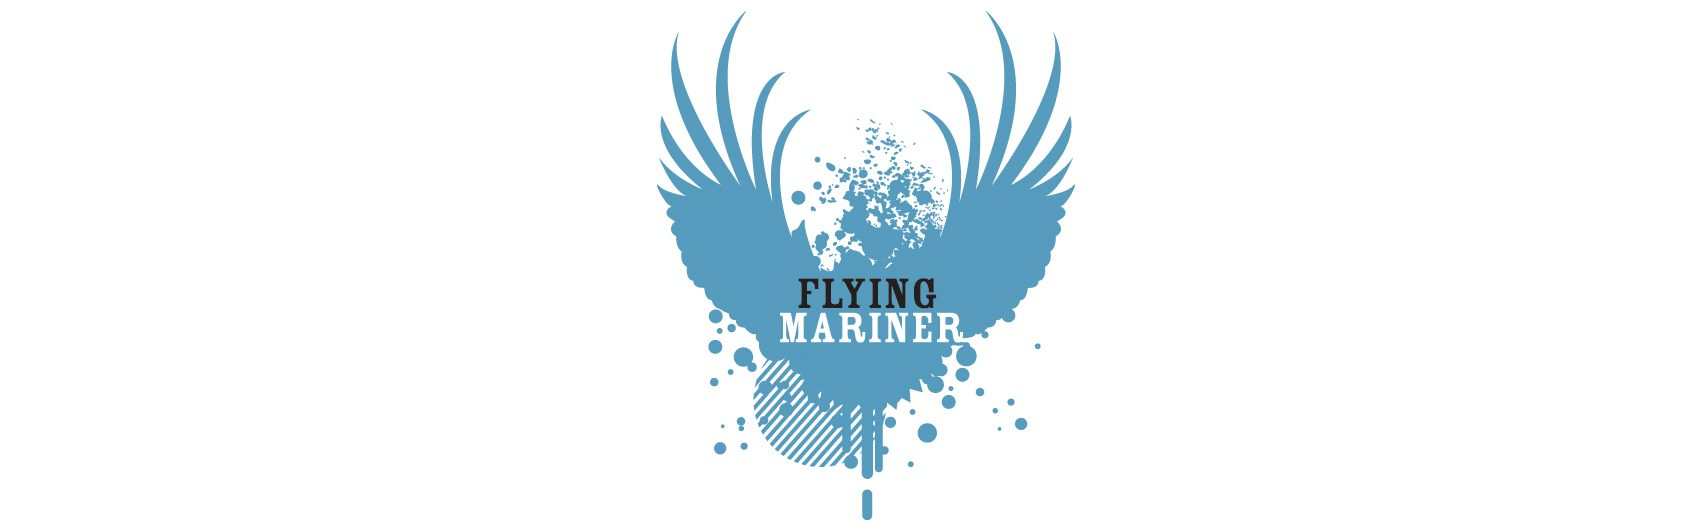 Flying Mariner